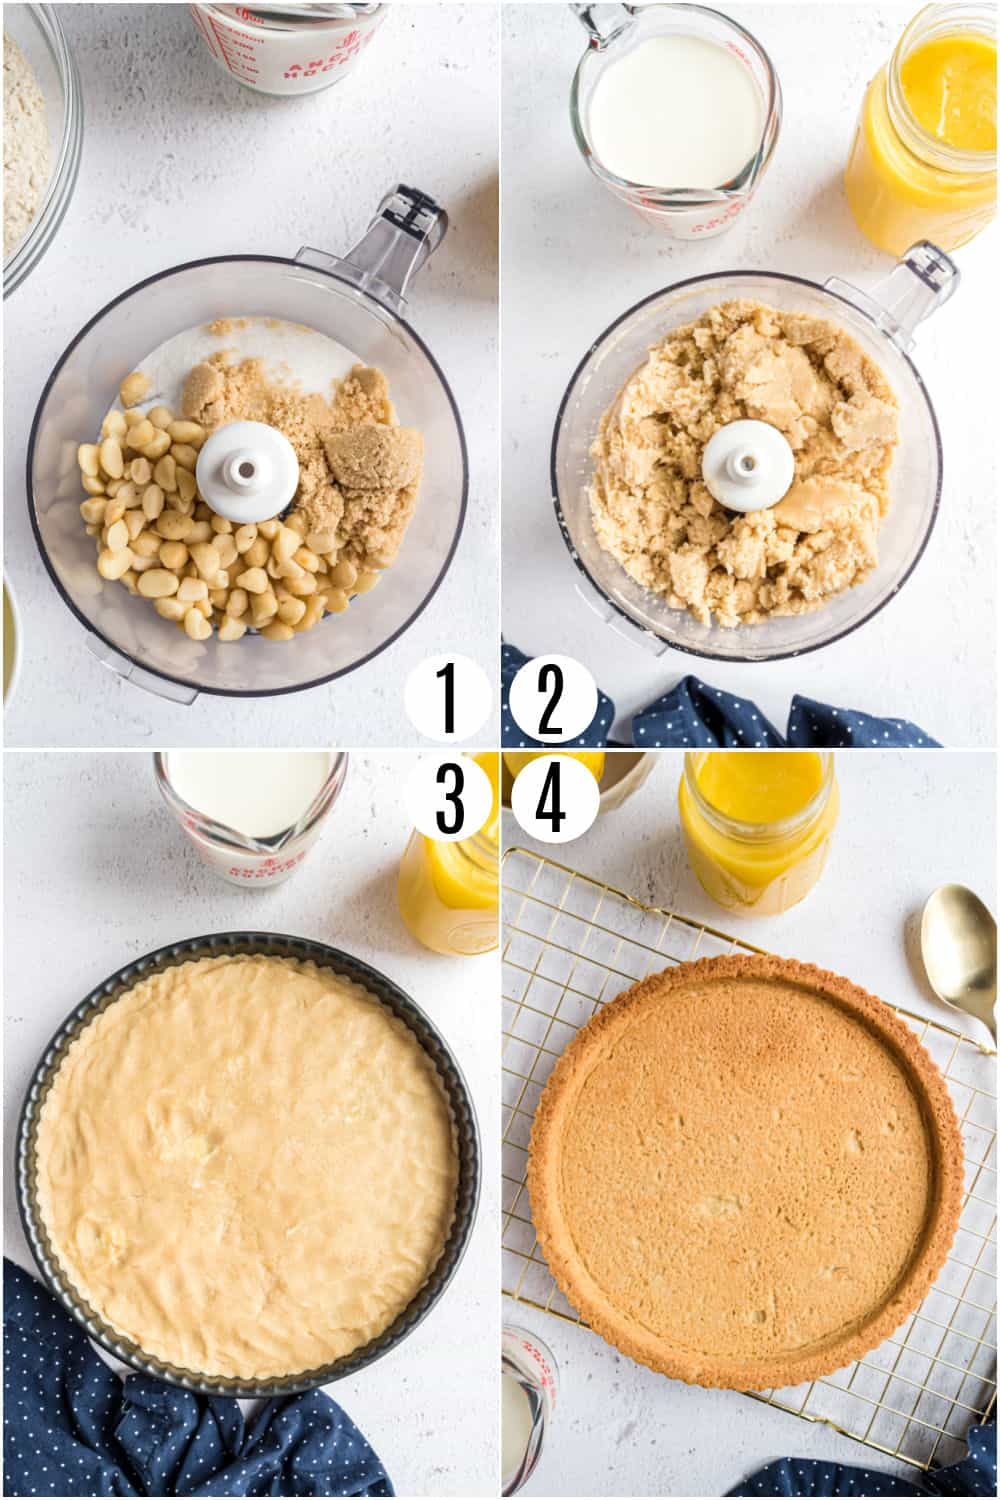 Step by step photos showing how to make a lemon tart crust.